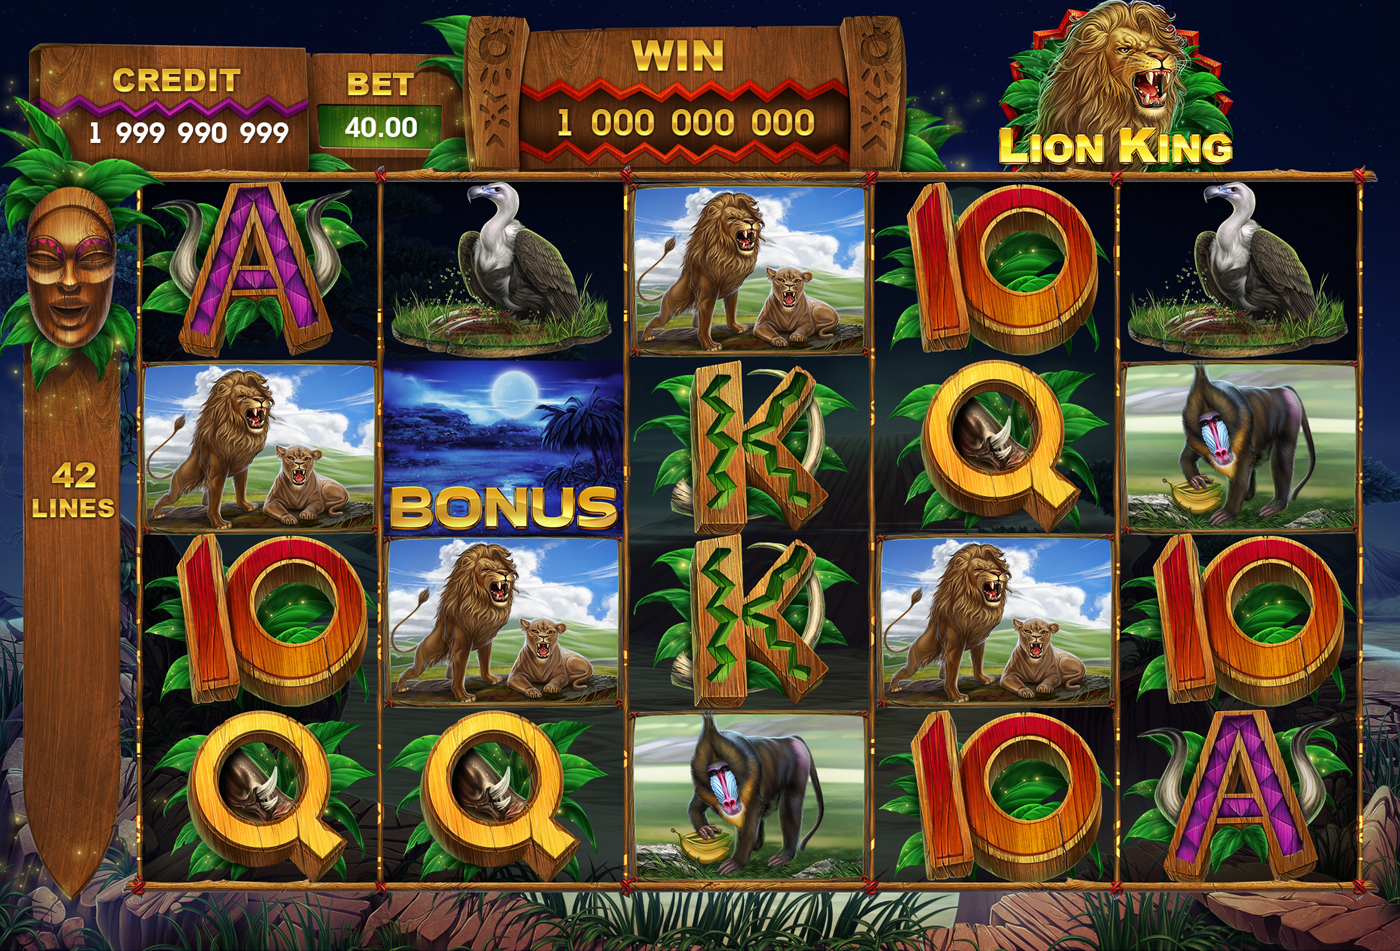 Lion King Slot Machine